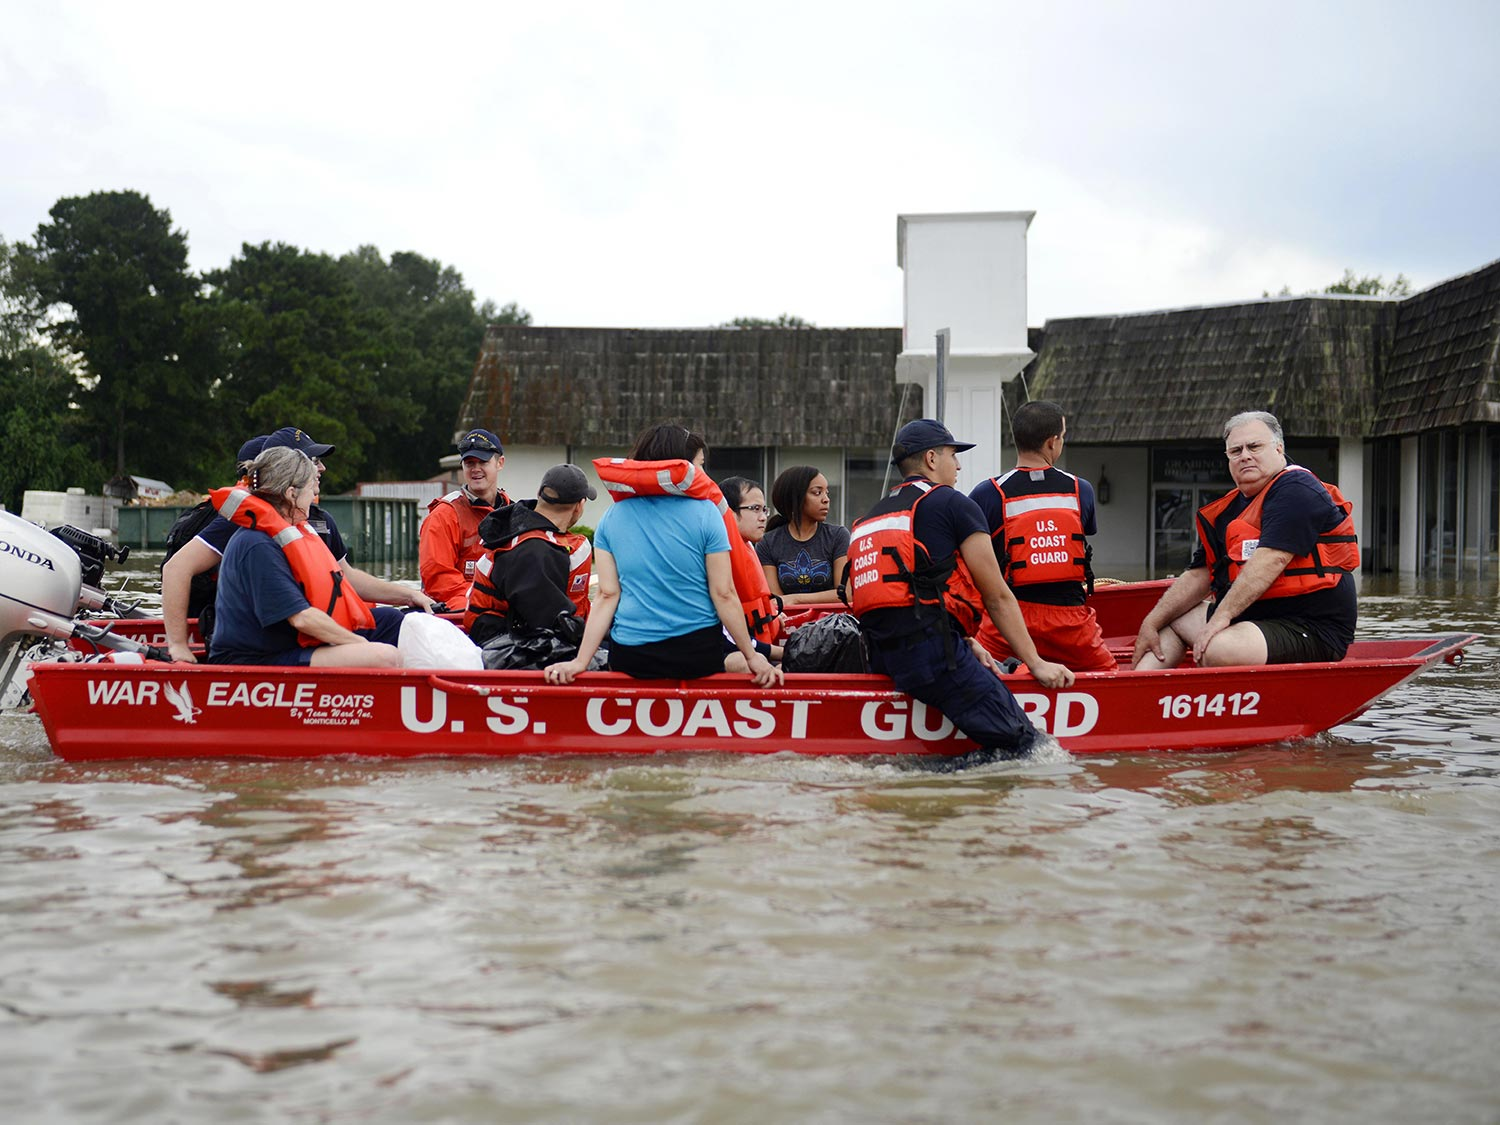 People being resqued by boat by the U.S. coast Guard during a flood in Louisiana